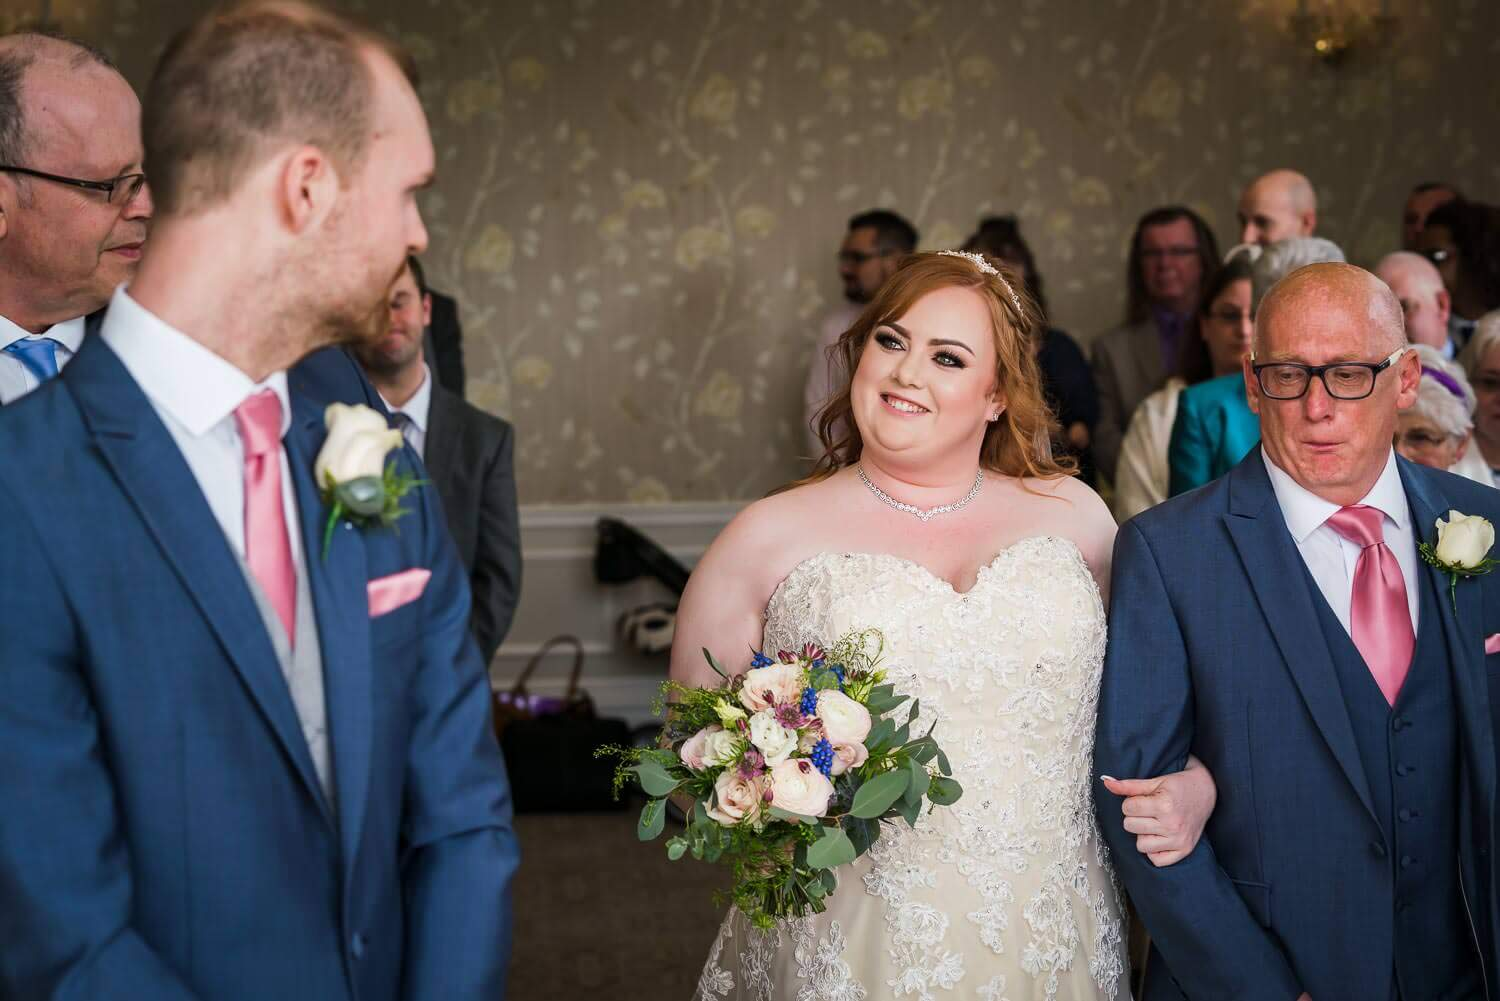 Somerset wedding photography, Somerset wedding photographer, clevedon hall, bride, ceremony